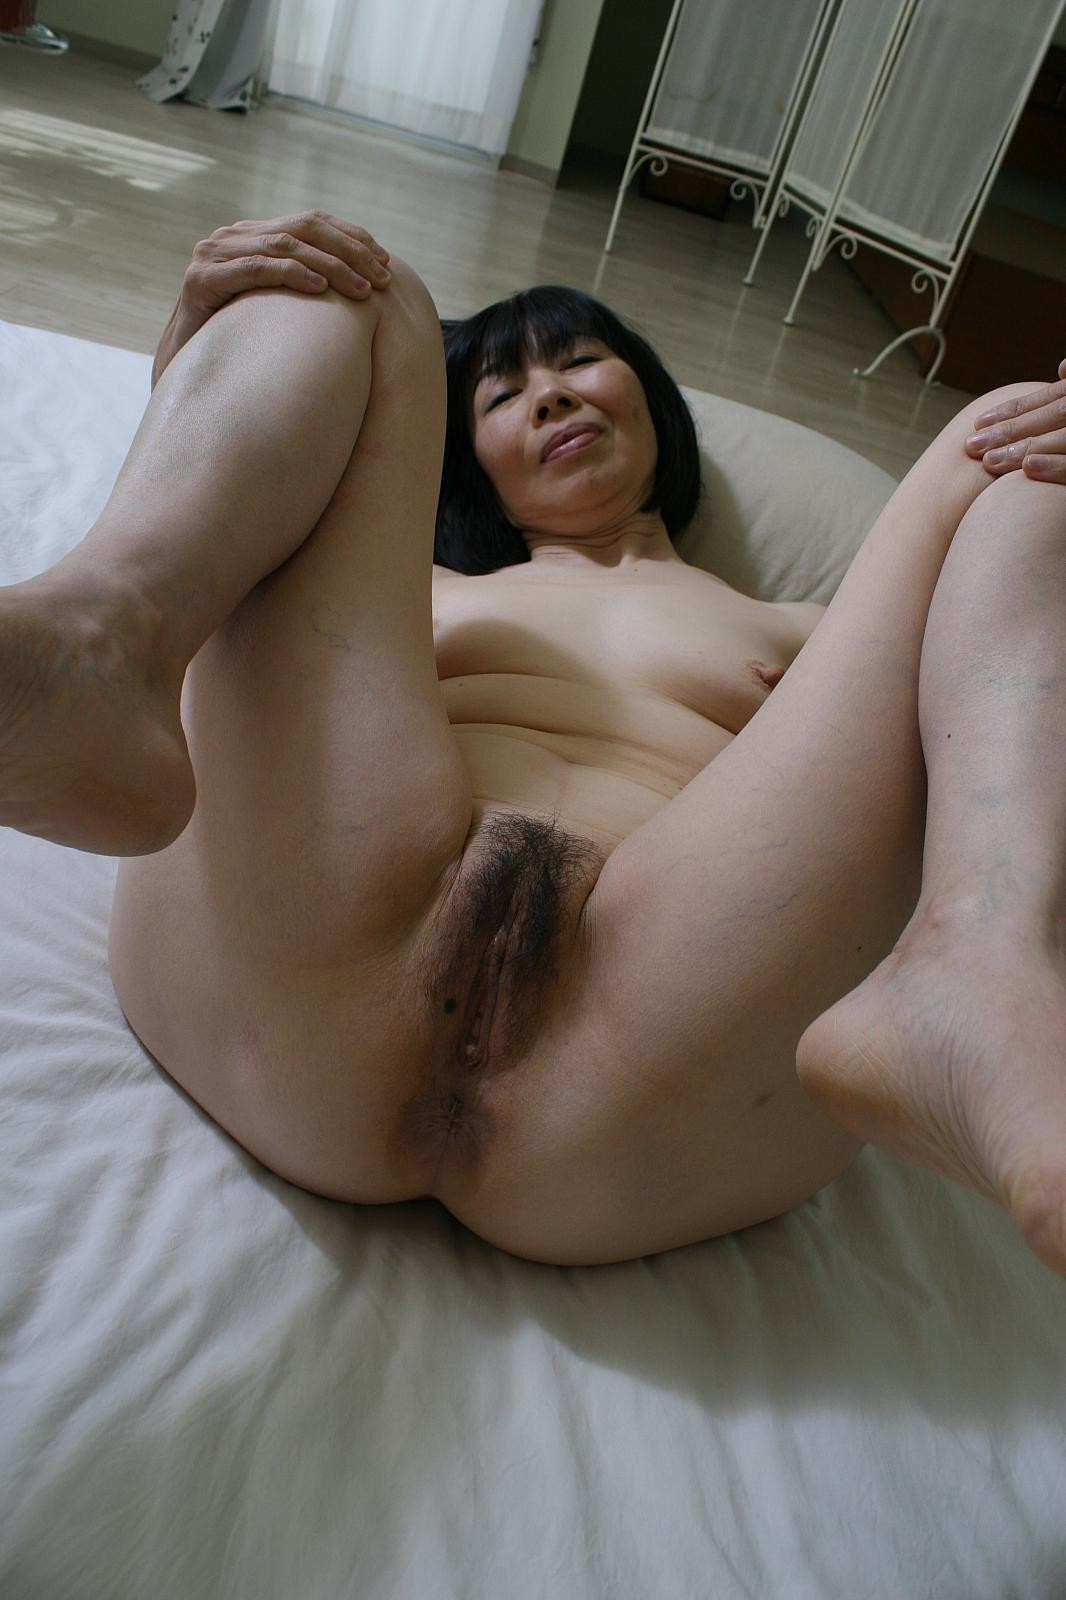 Big vagina asian women